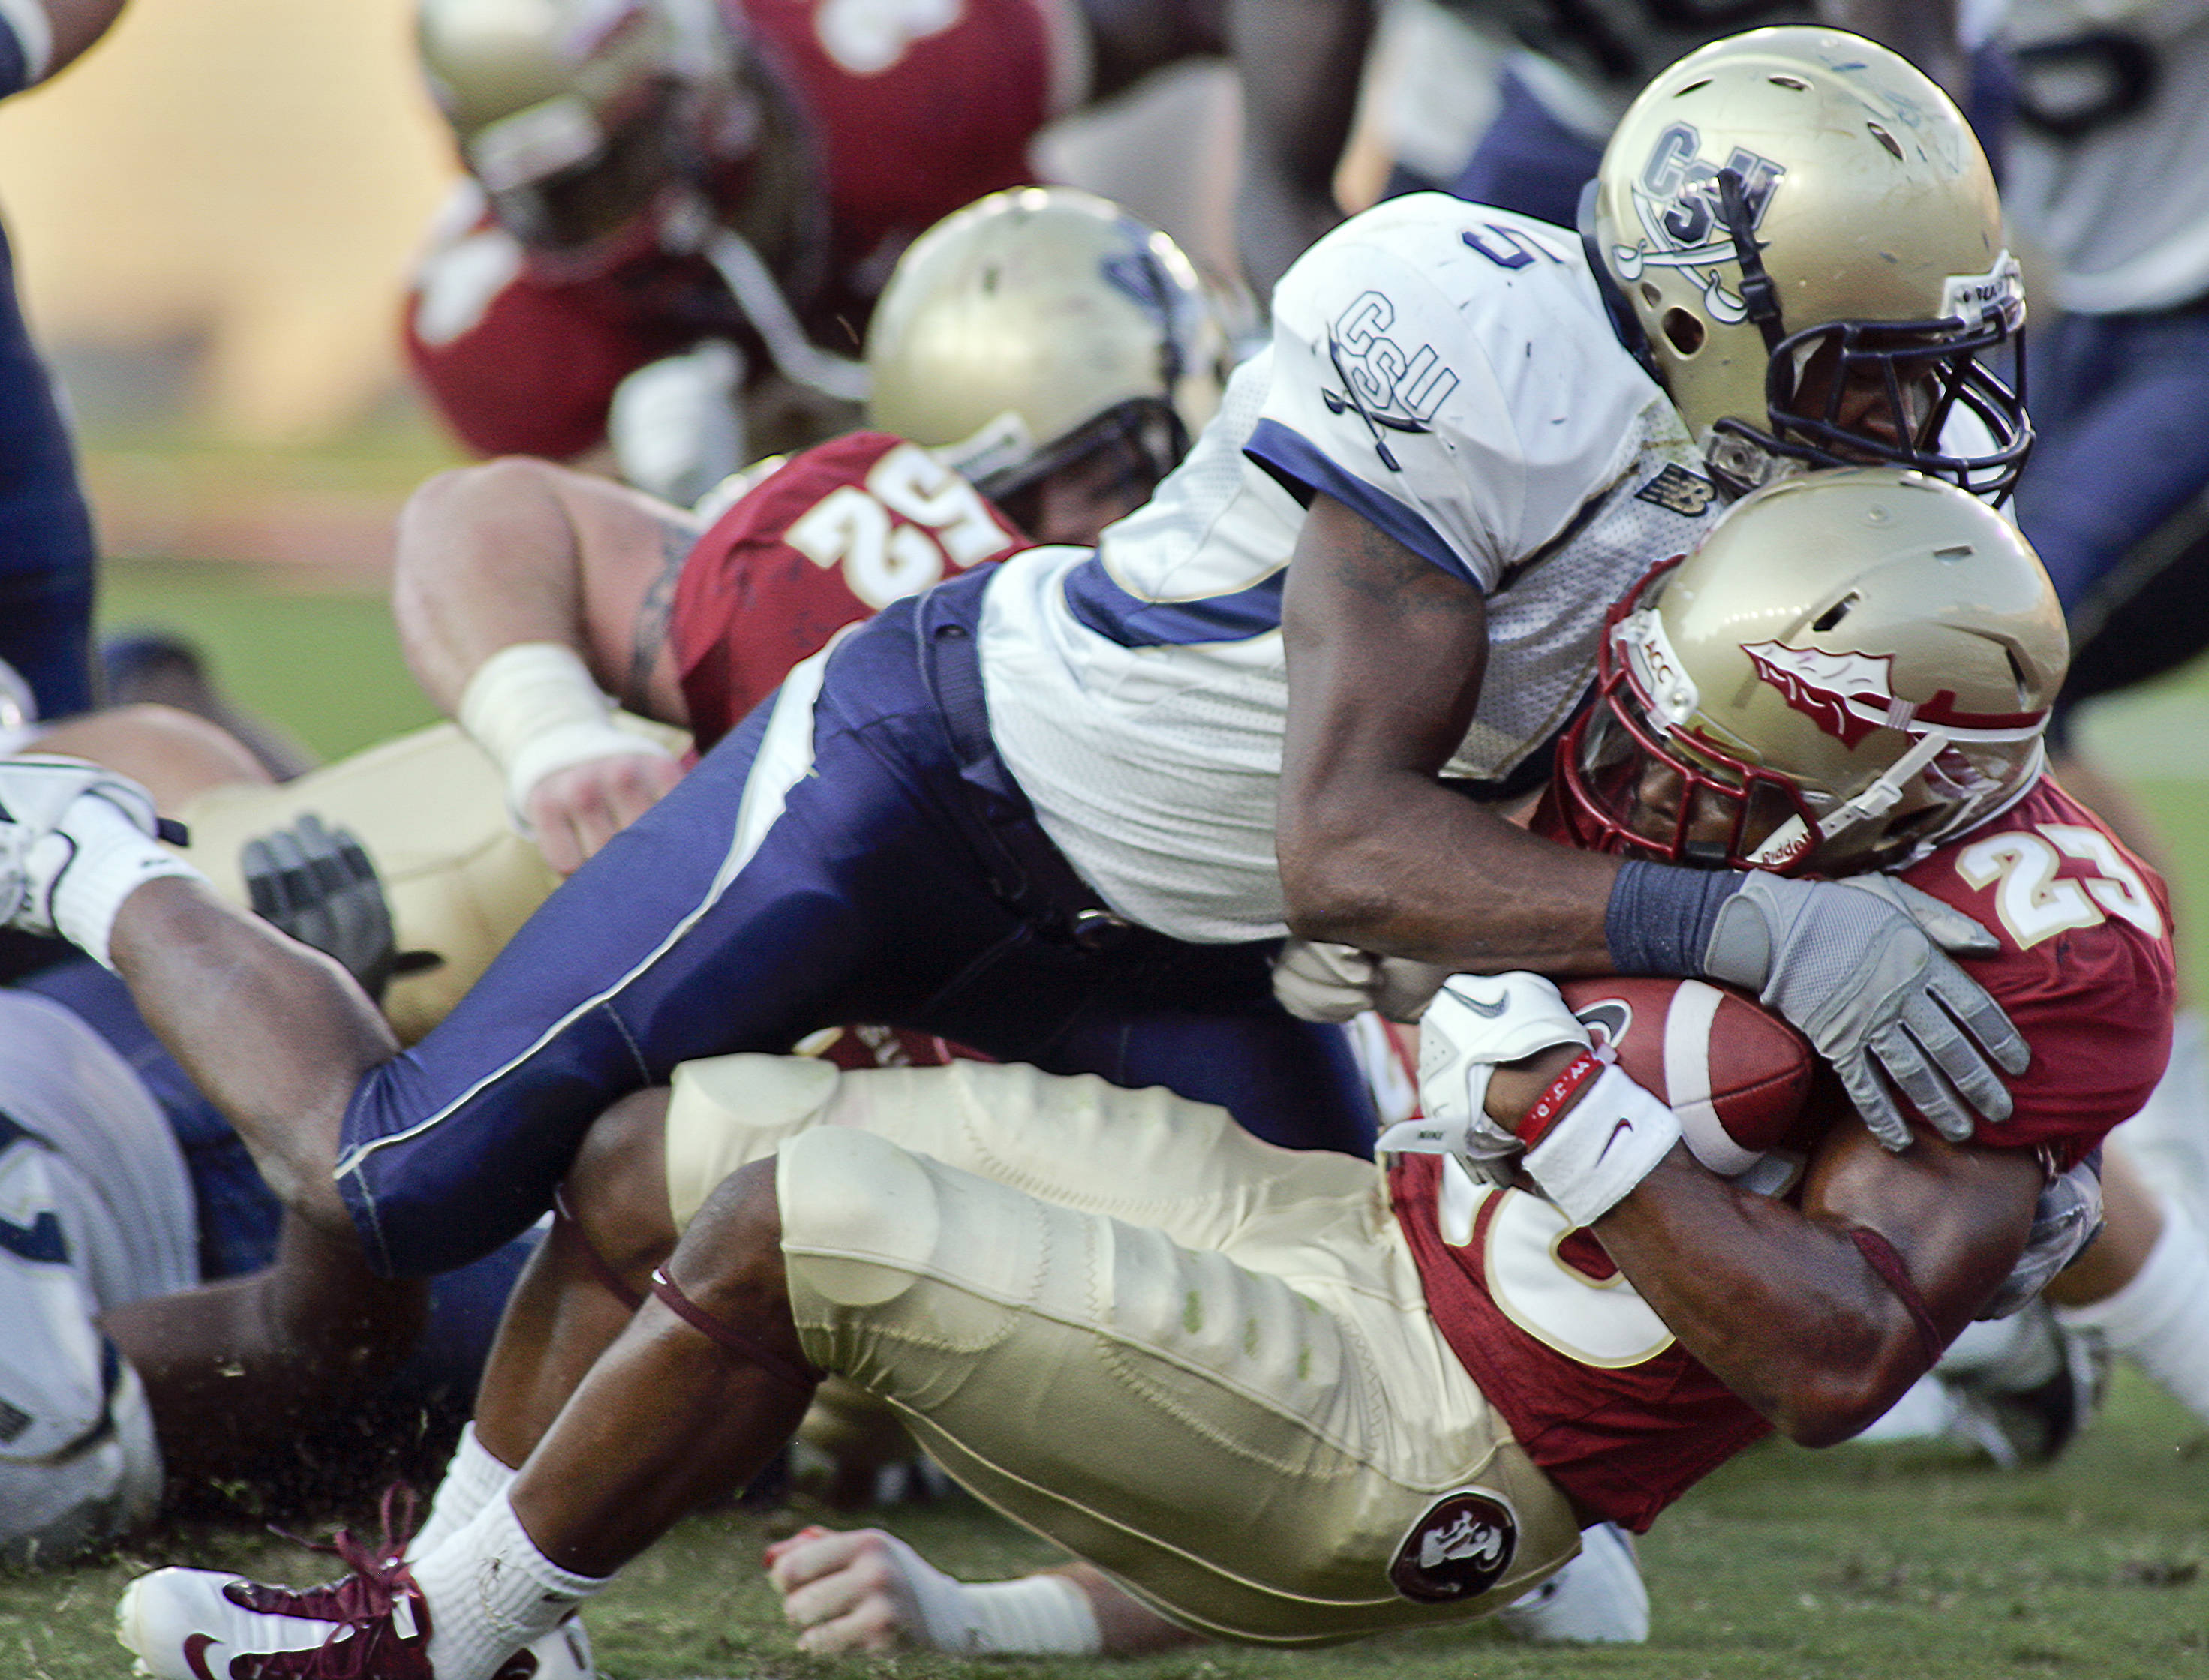 Florida State's running back Chris Thompson (23) dives into the endzone for a two-yard touchdown as Charleston Southern's defensive back Demaris Freeman (5) tries to stop him in the second quarter of an NCAA college football game on Saturday, Sept. 10, 2011, in Tallahassee, Fla. (AP Photo/Phil Sears)